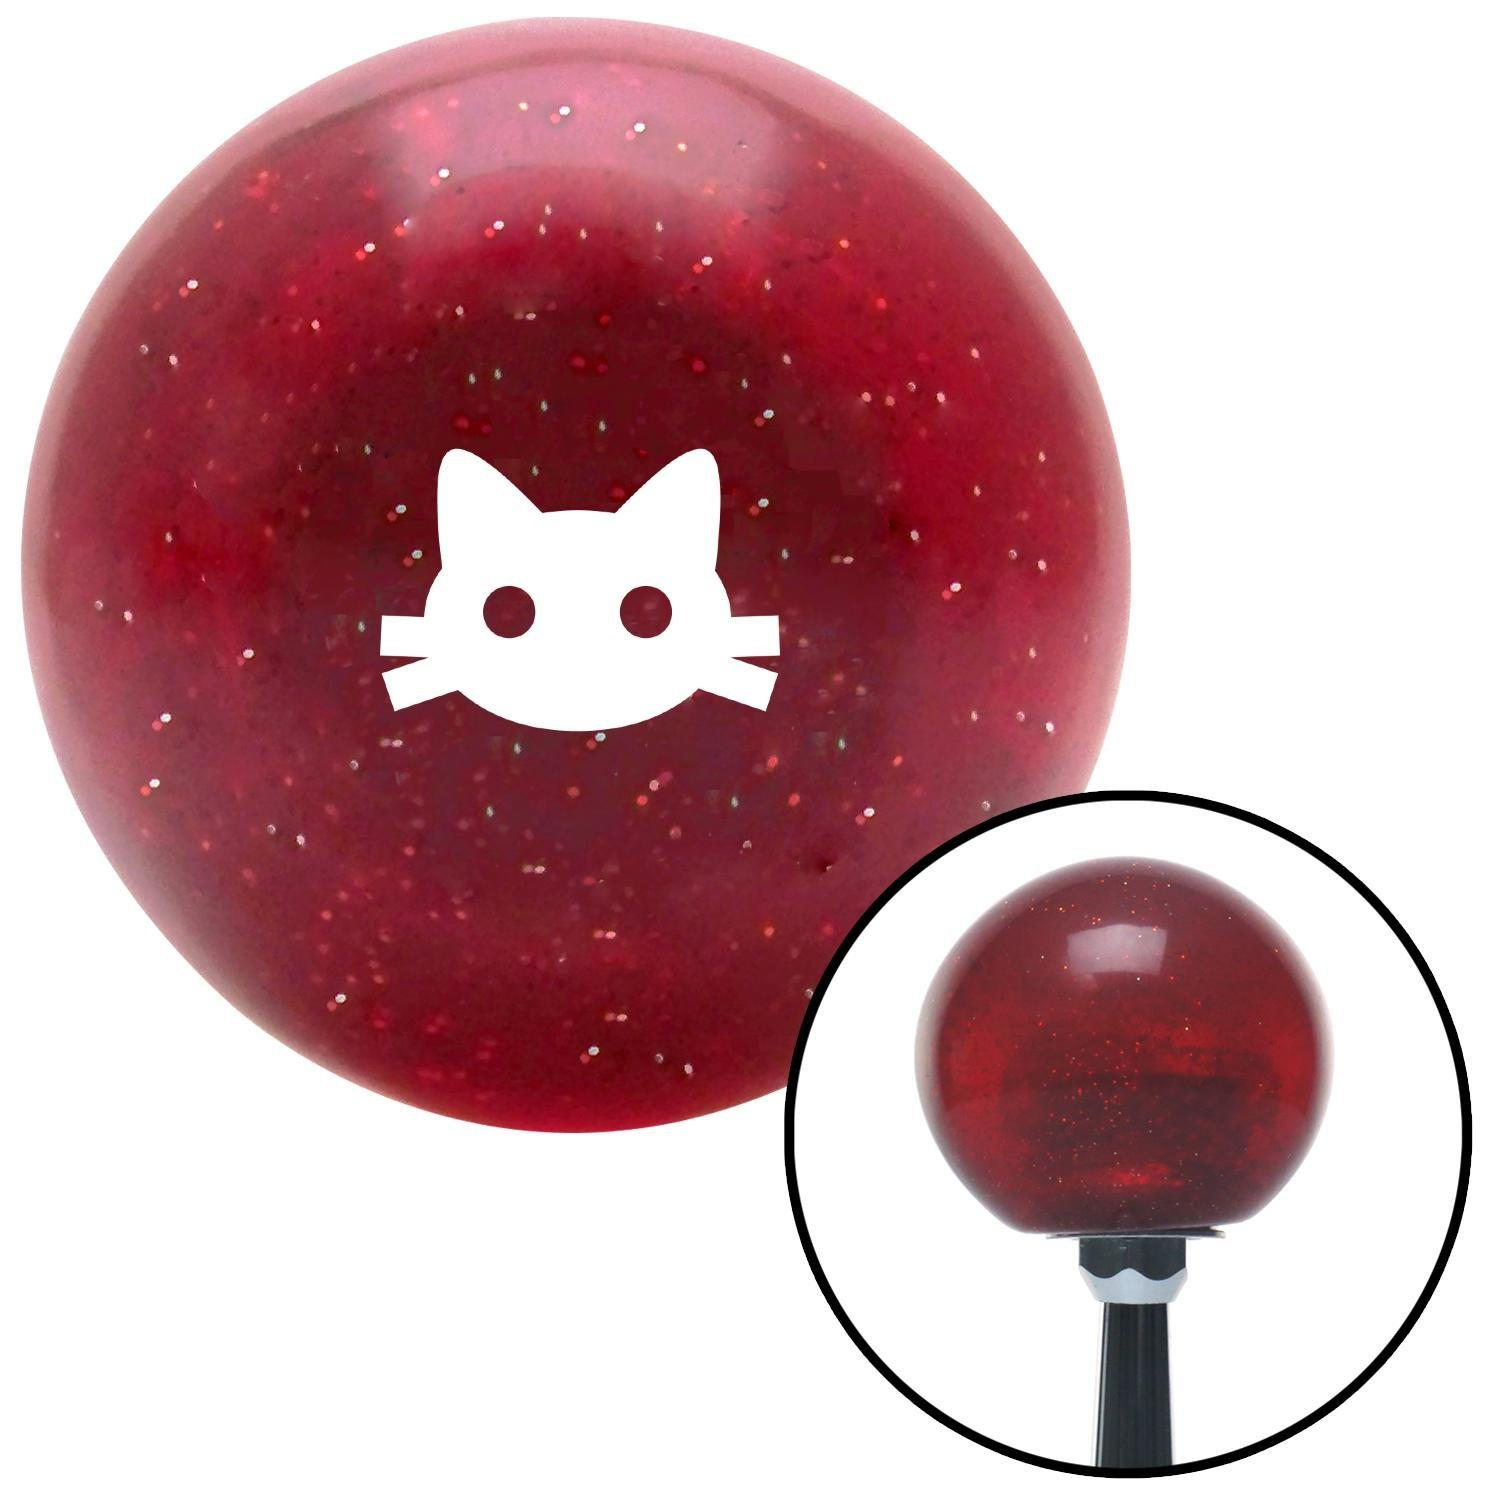 American Shifter 282036 Shift Knob White Cat Silhouette 2 Red Metal Flake with M16 x 1.5 Insert